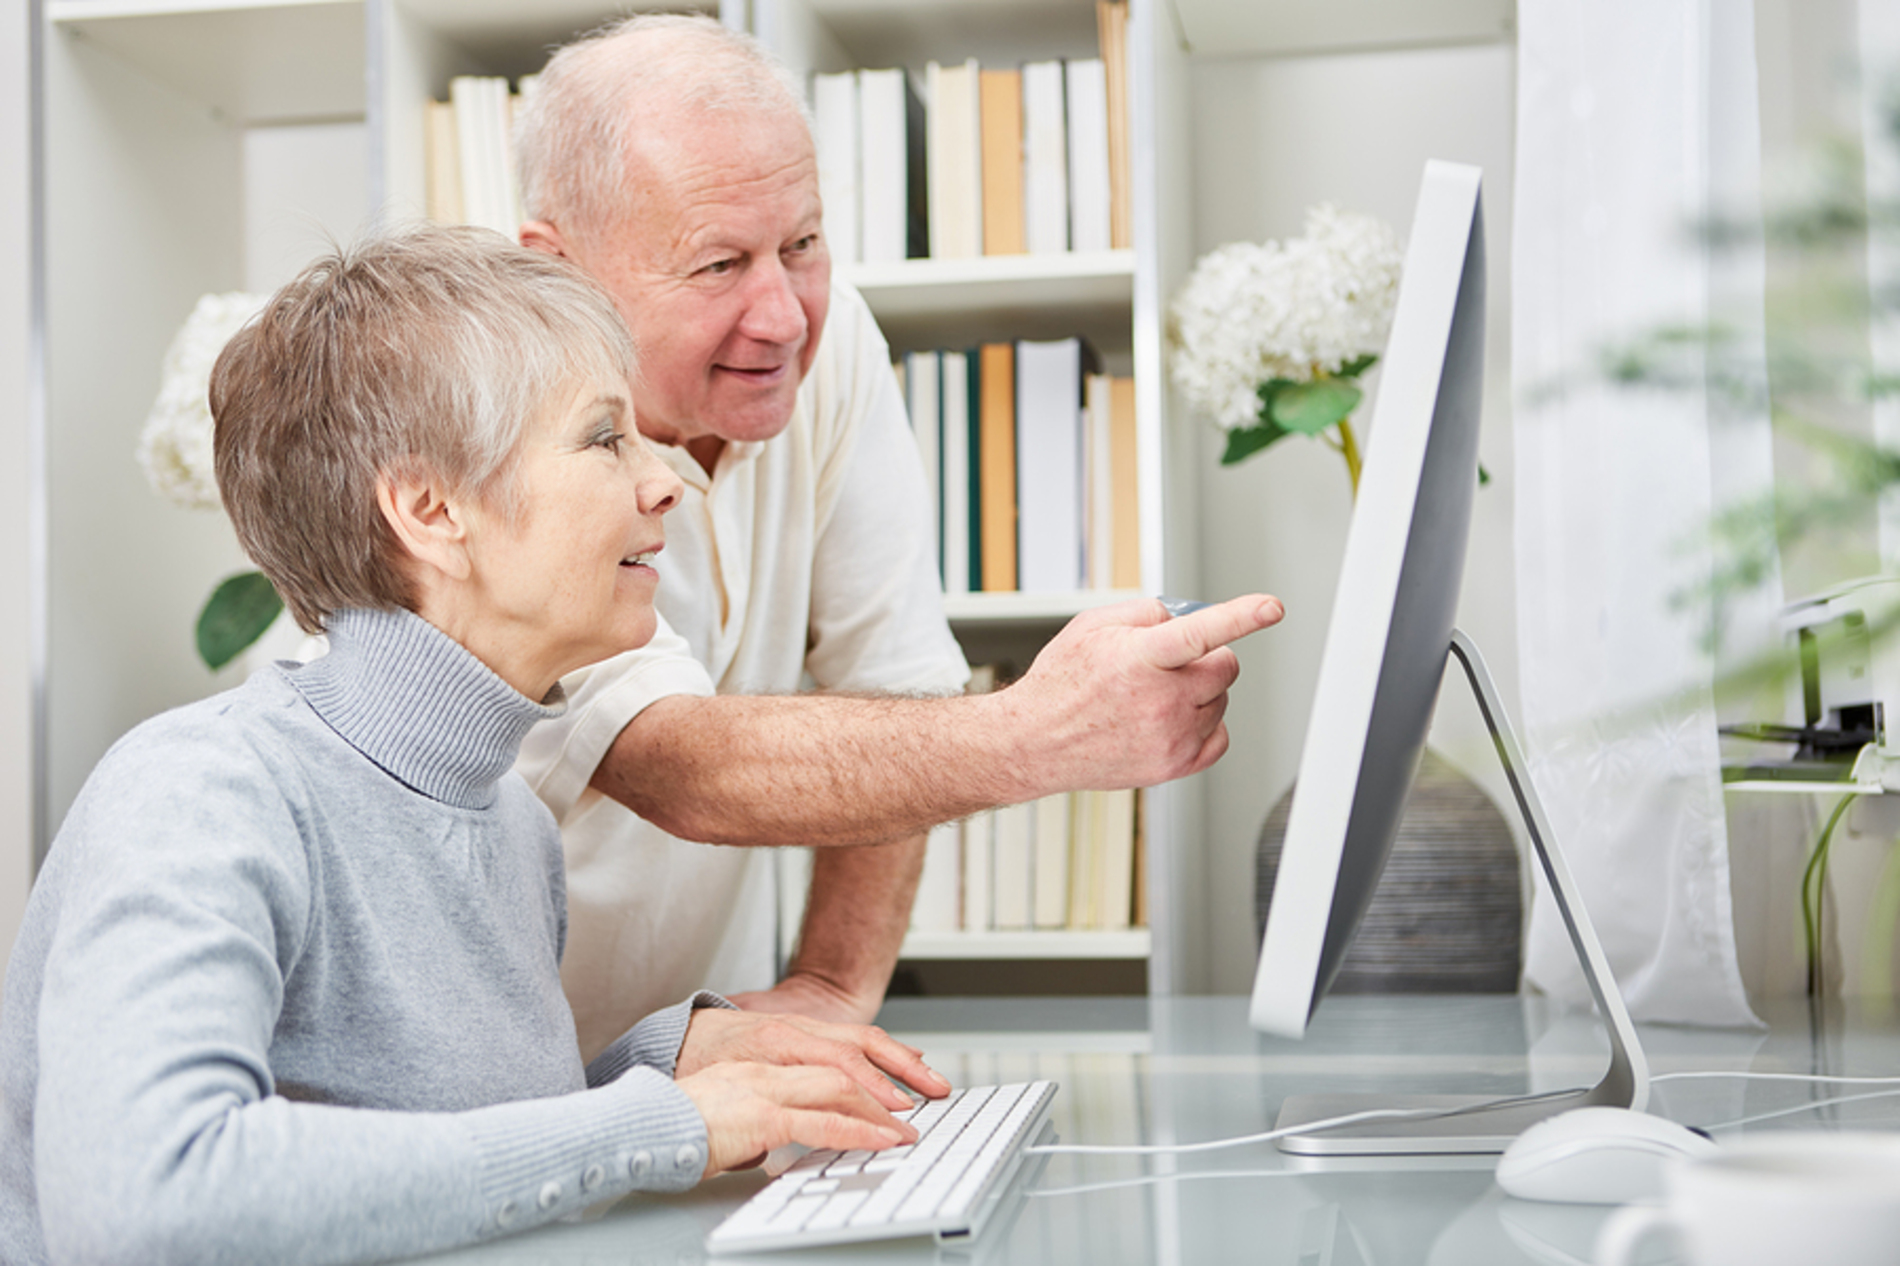 Elderly couple looking at a desktop computer together.